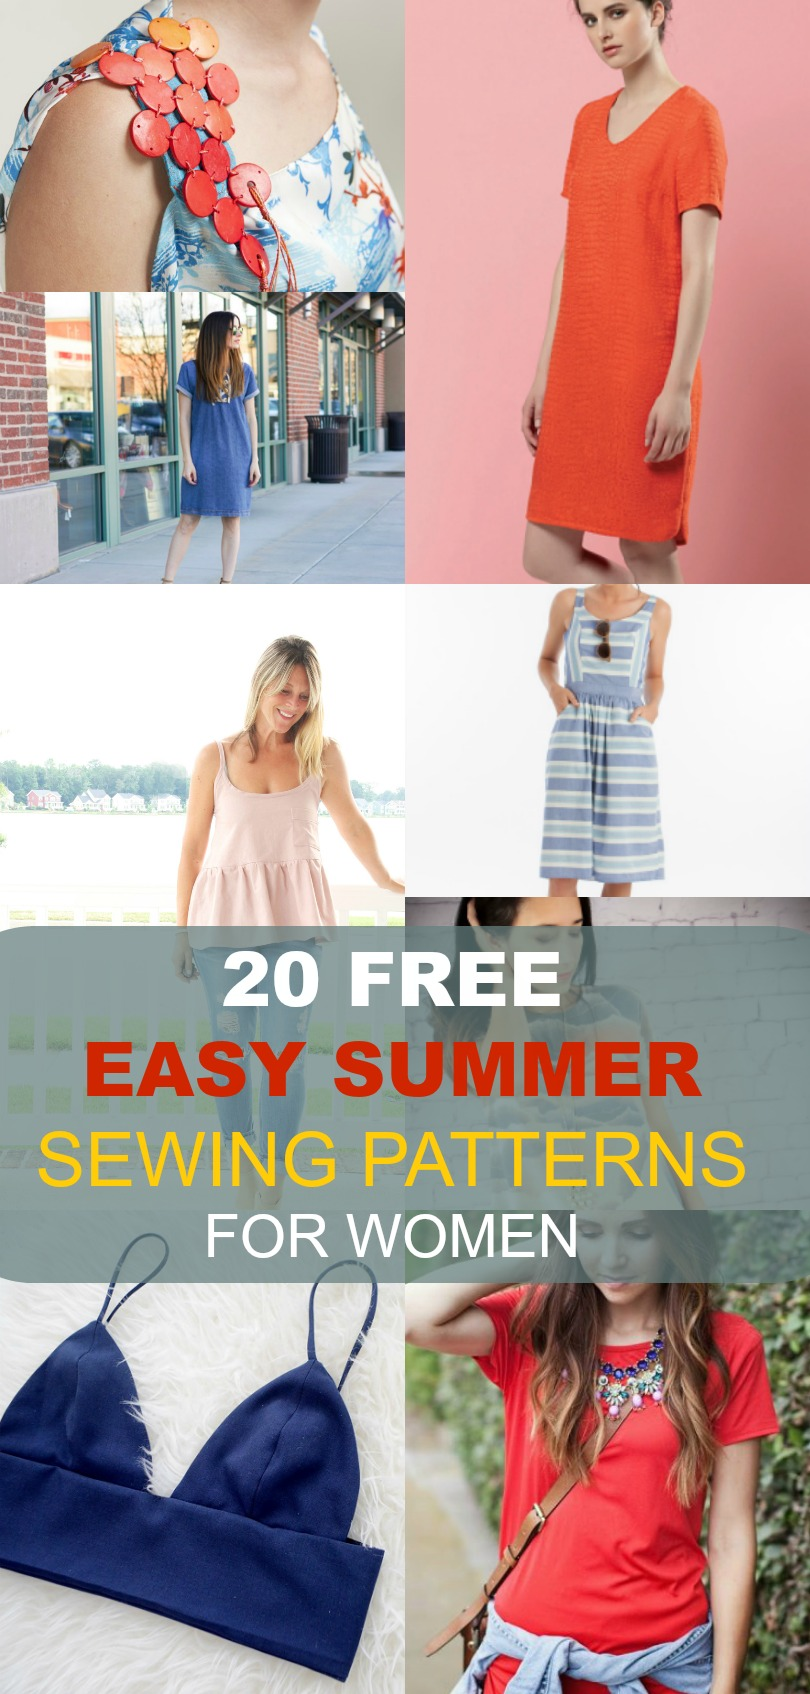 Free Sewing Patterns 20 Easy Summer Patterns For Women On The